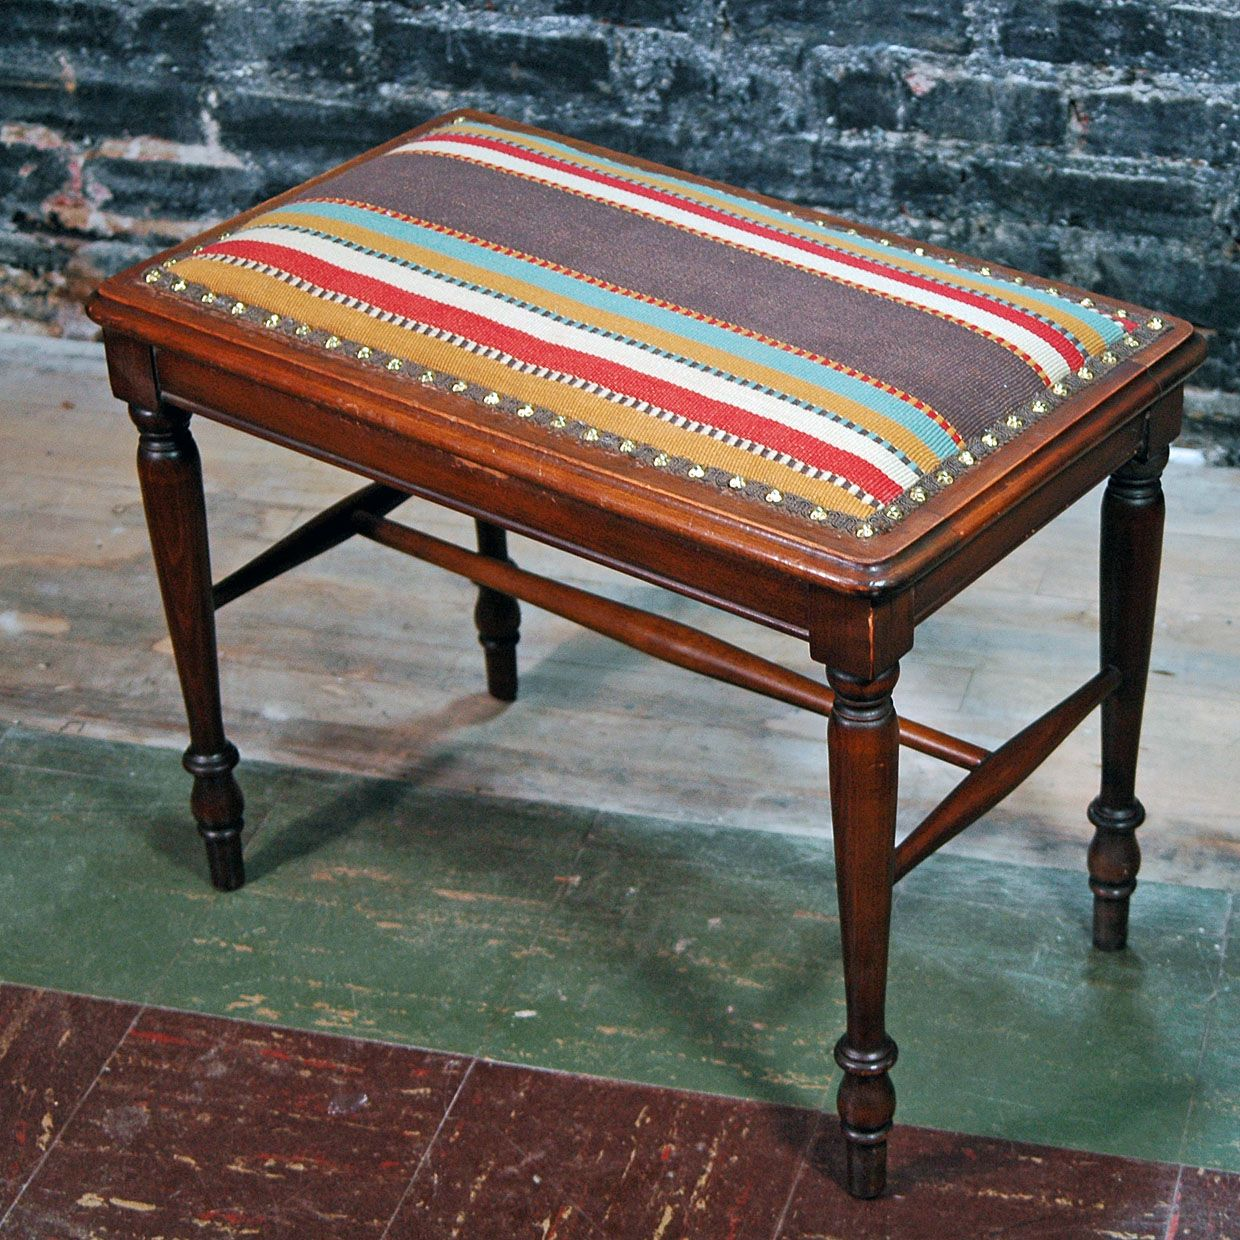 Reupholstered Piano Bench With Images Piano Bench Redo Furniture Cool Furniture